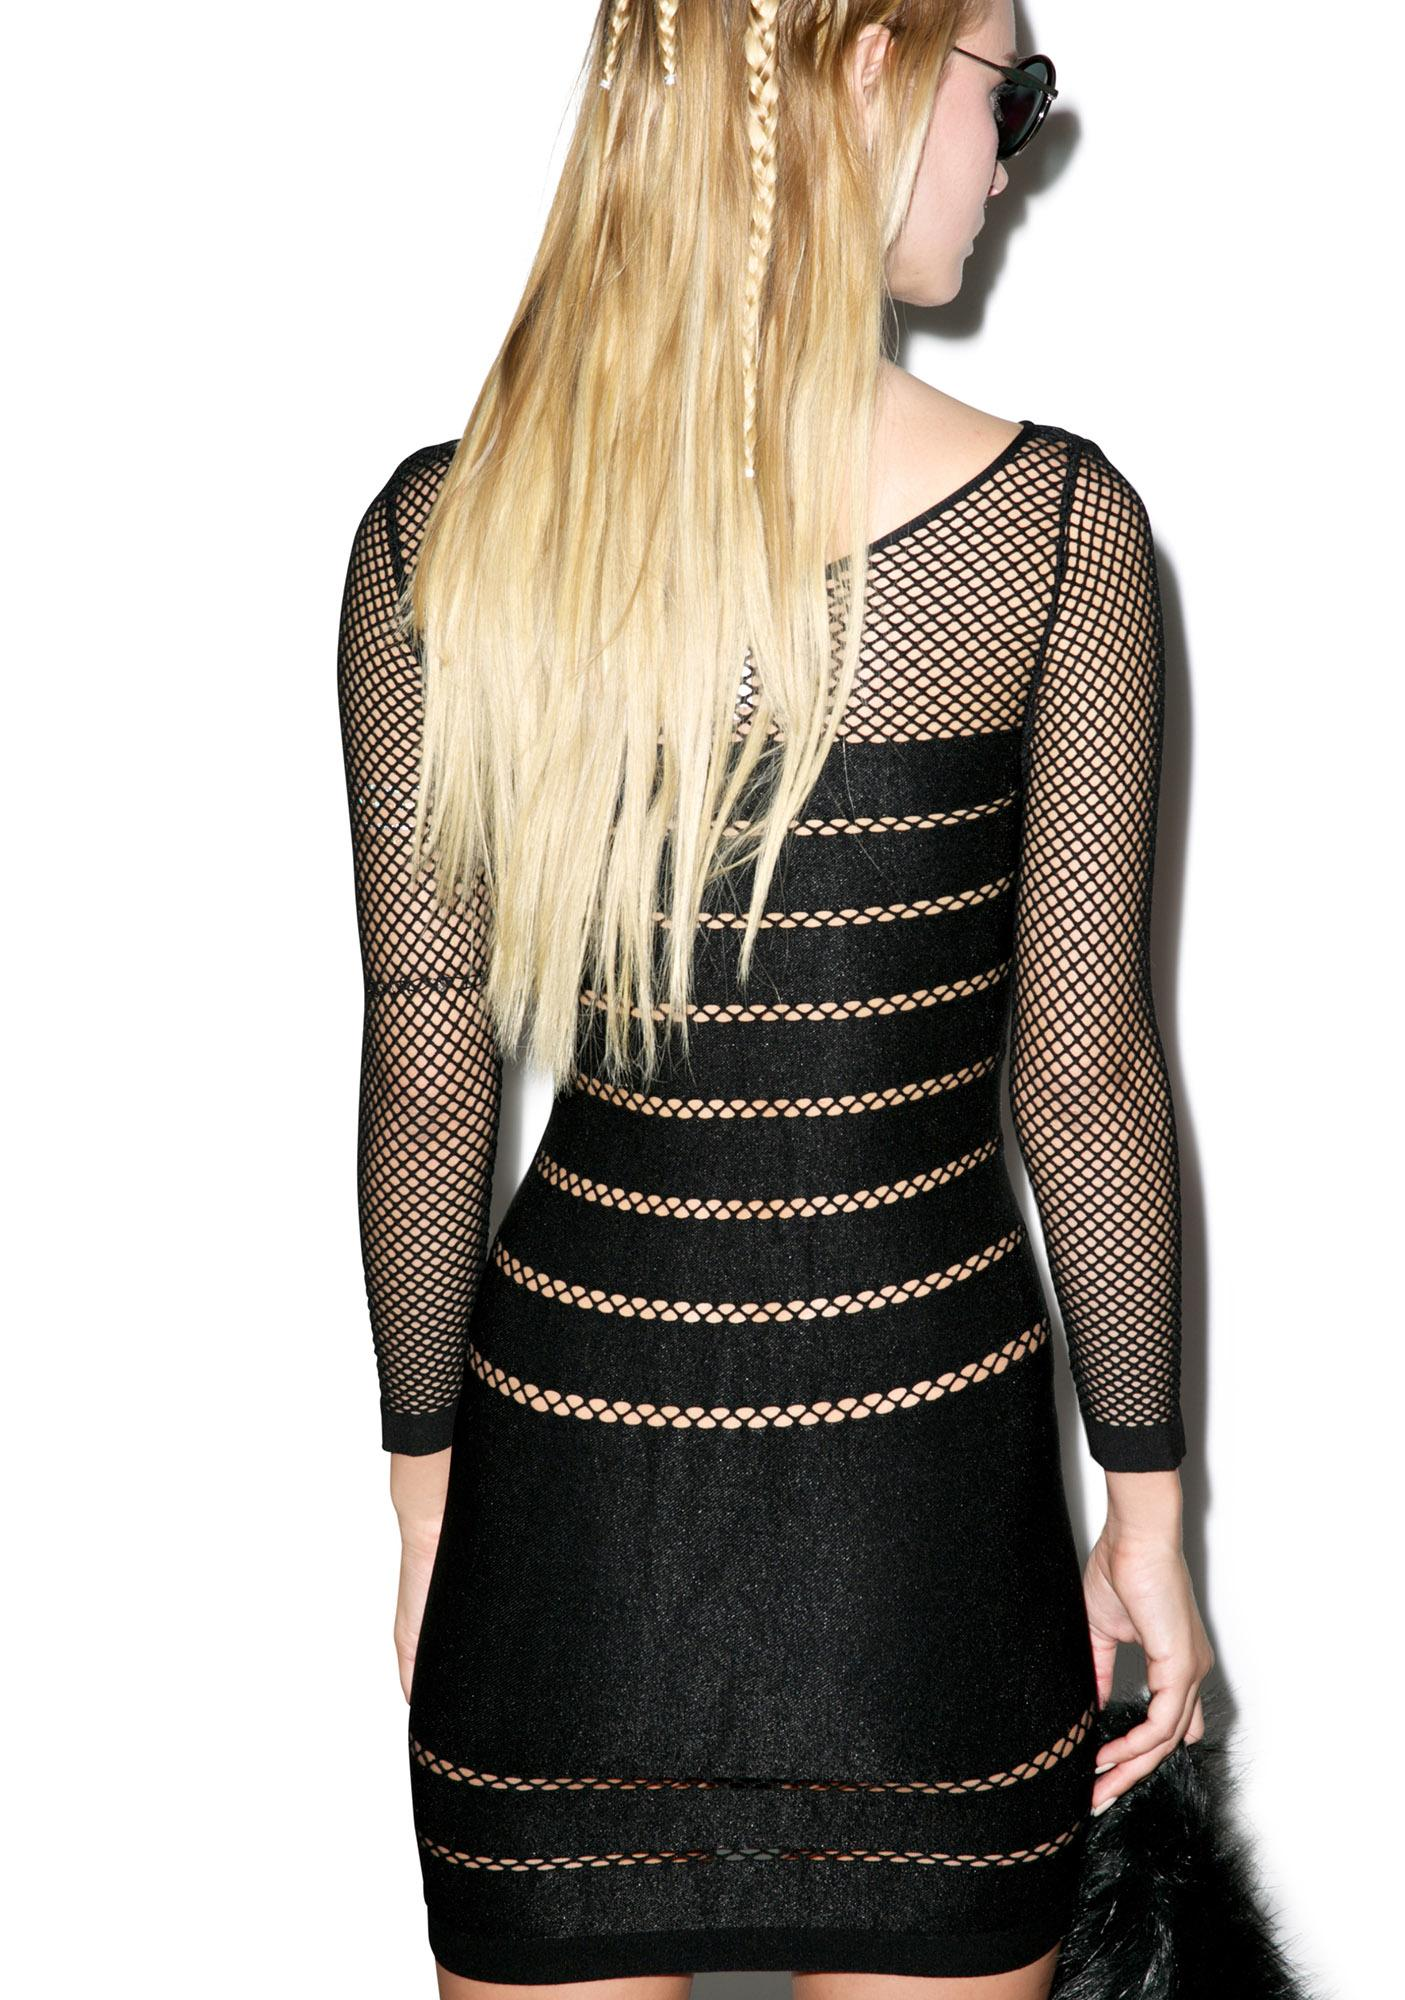 Vantablack Mistress Bodycon Dress